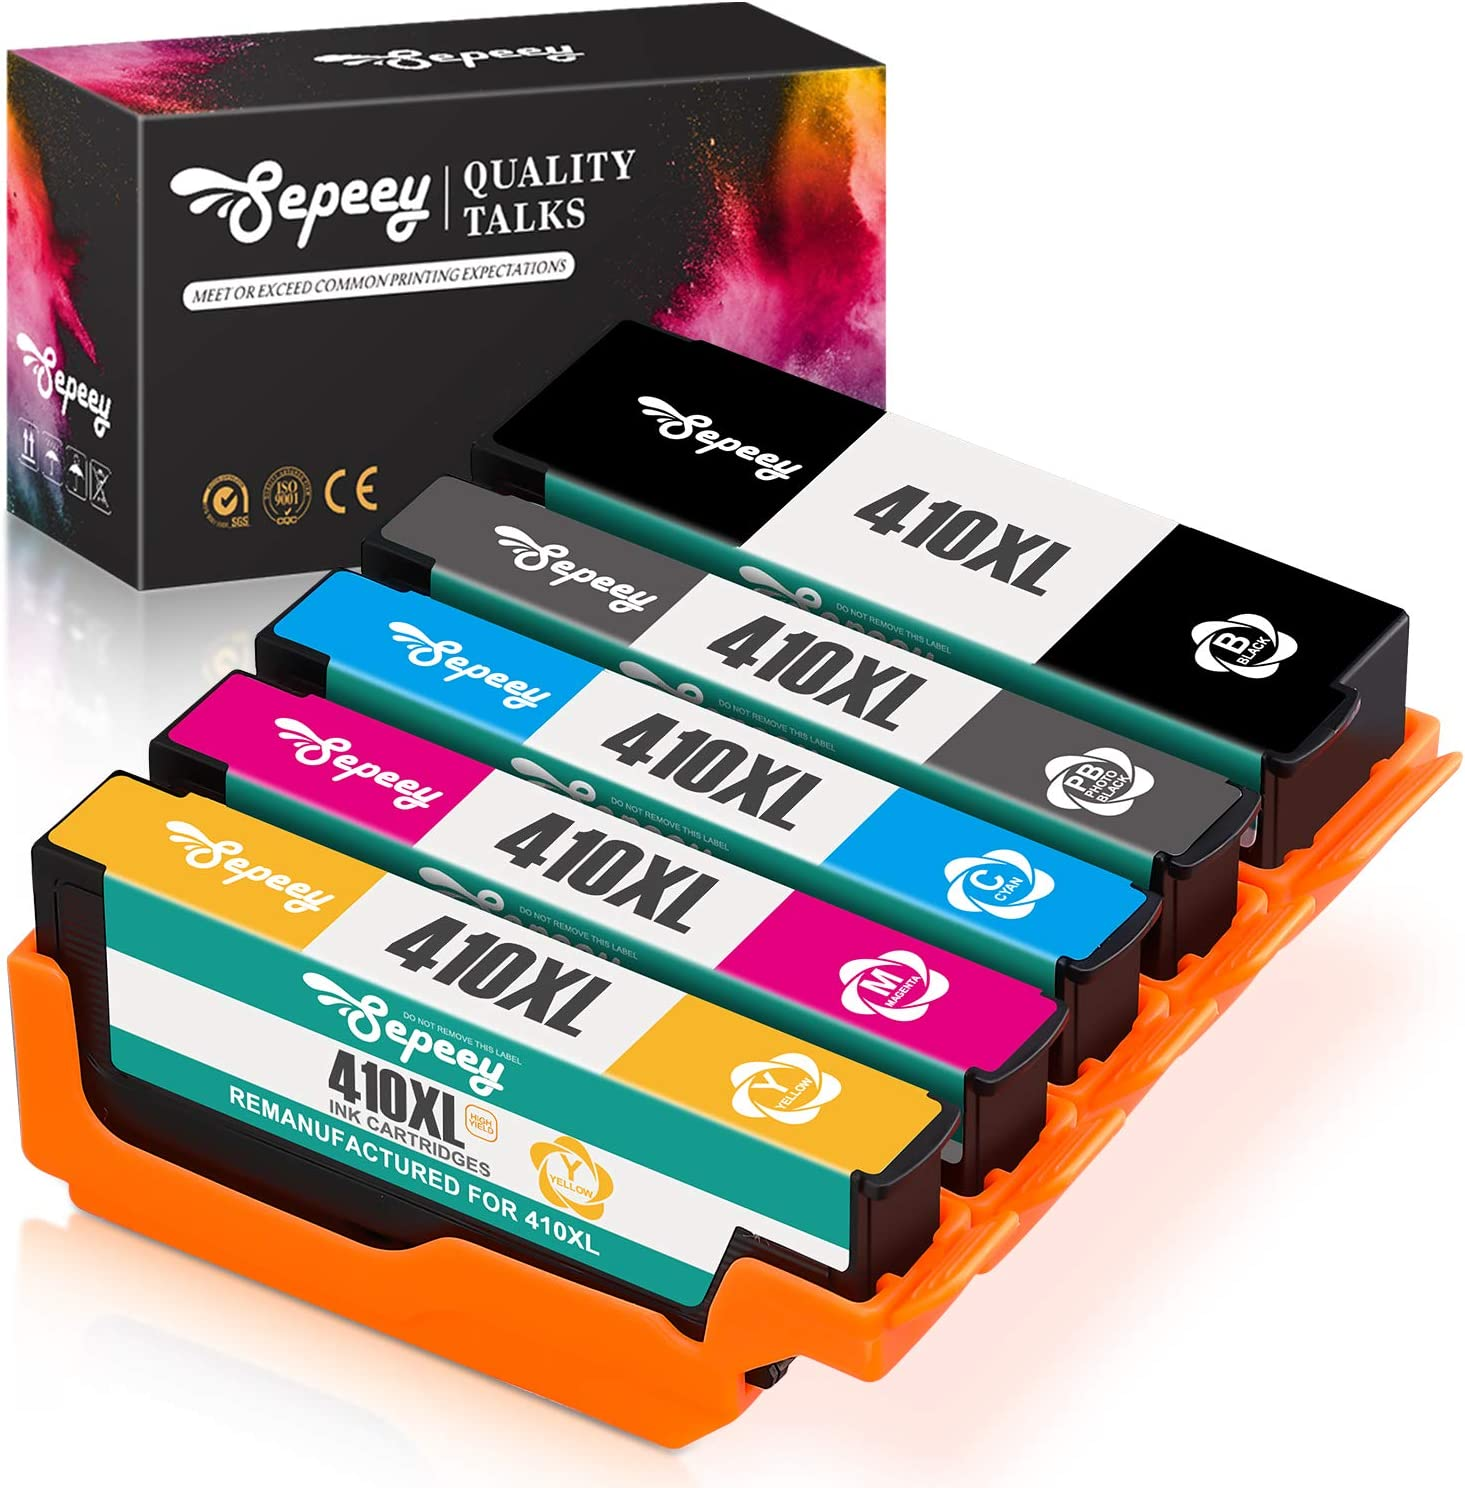 Sepeey Remanufactured Ink Cartridge Replacement for Epson 410XL 410 XL T410XL to use with Expression XP-7100 XP-530 XP-630 XP-635 XP-640 XP-830 (Black, Cyan, Magenta, Yellow, Photo Black) 5 Packs